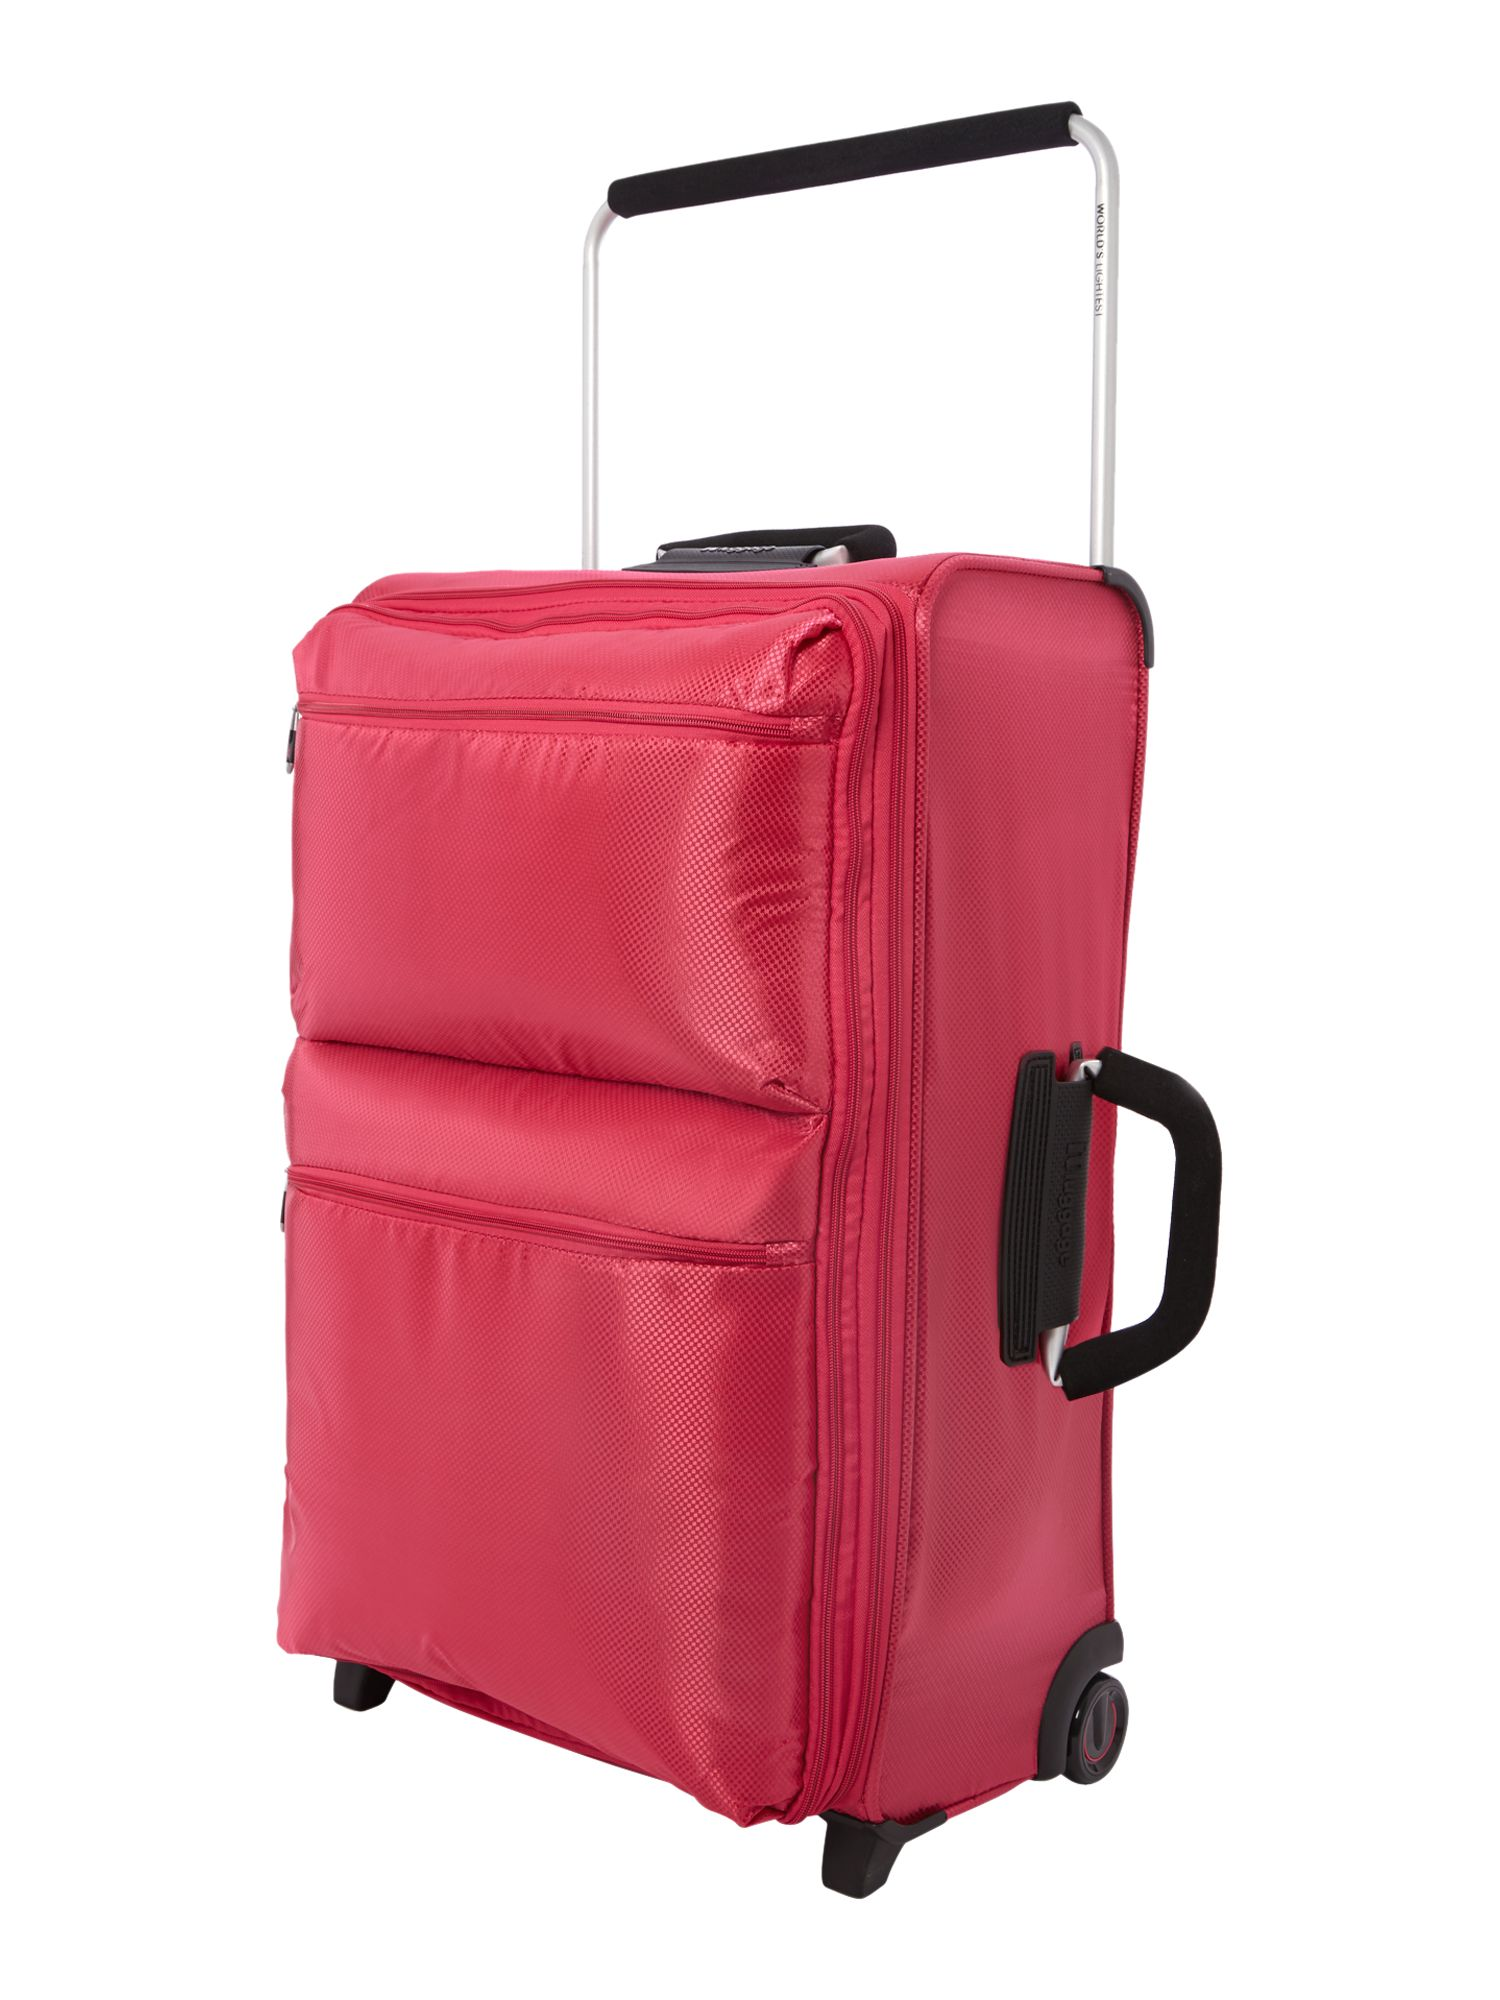 IT02 pink luggage range